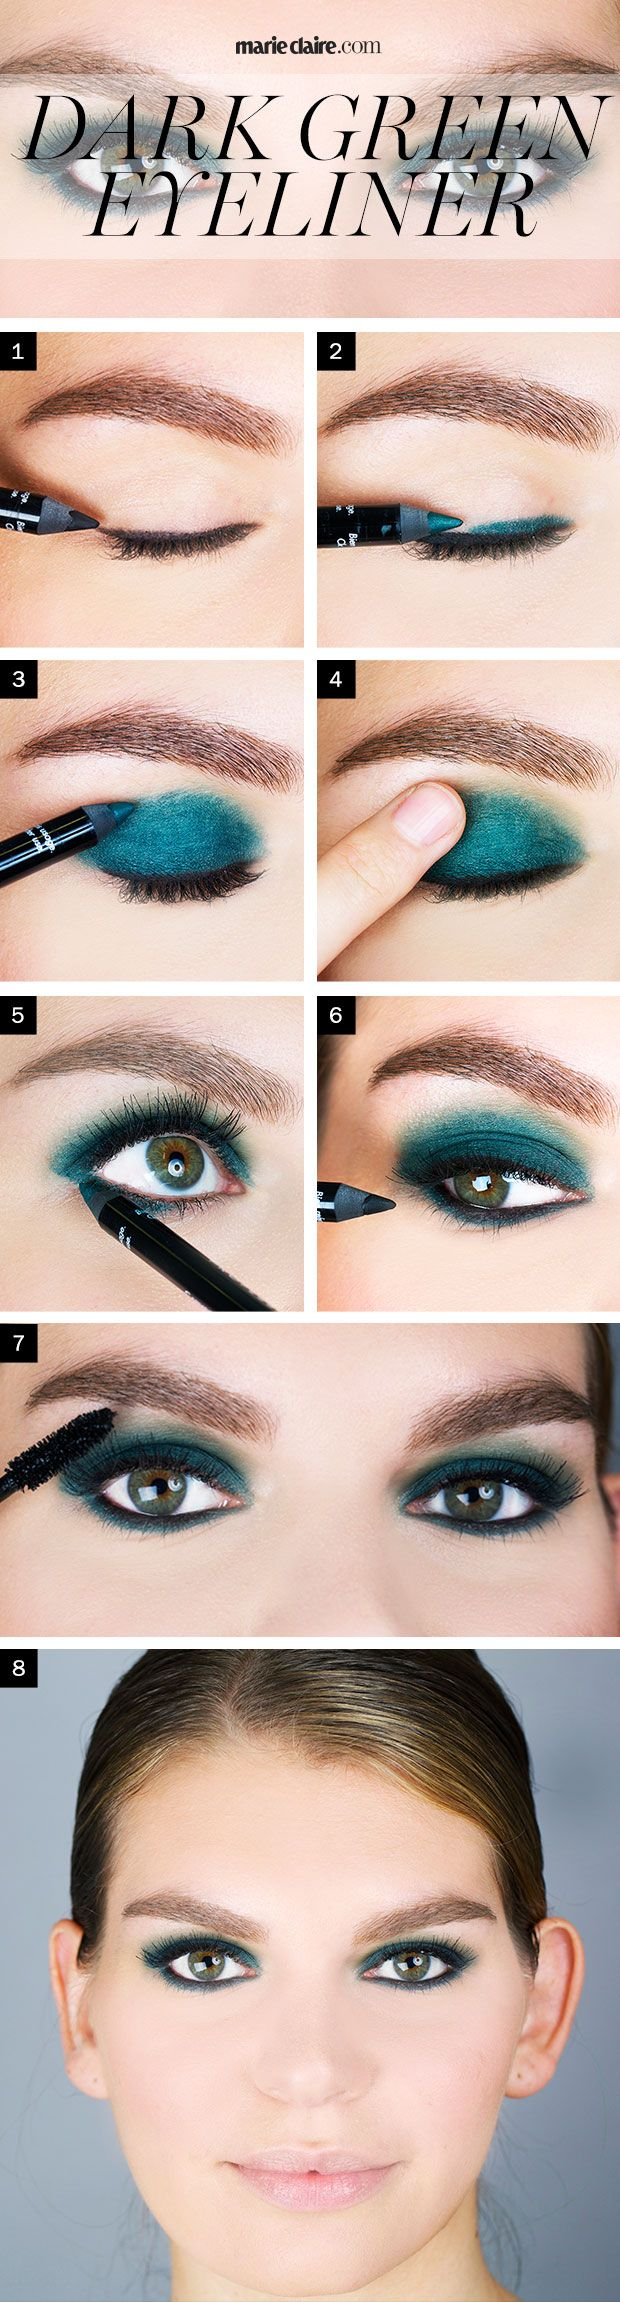 669 best makeup images on pinterest | make up, makeup and beautiful